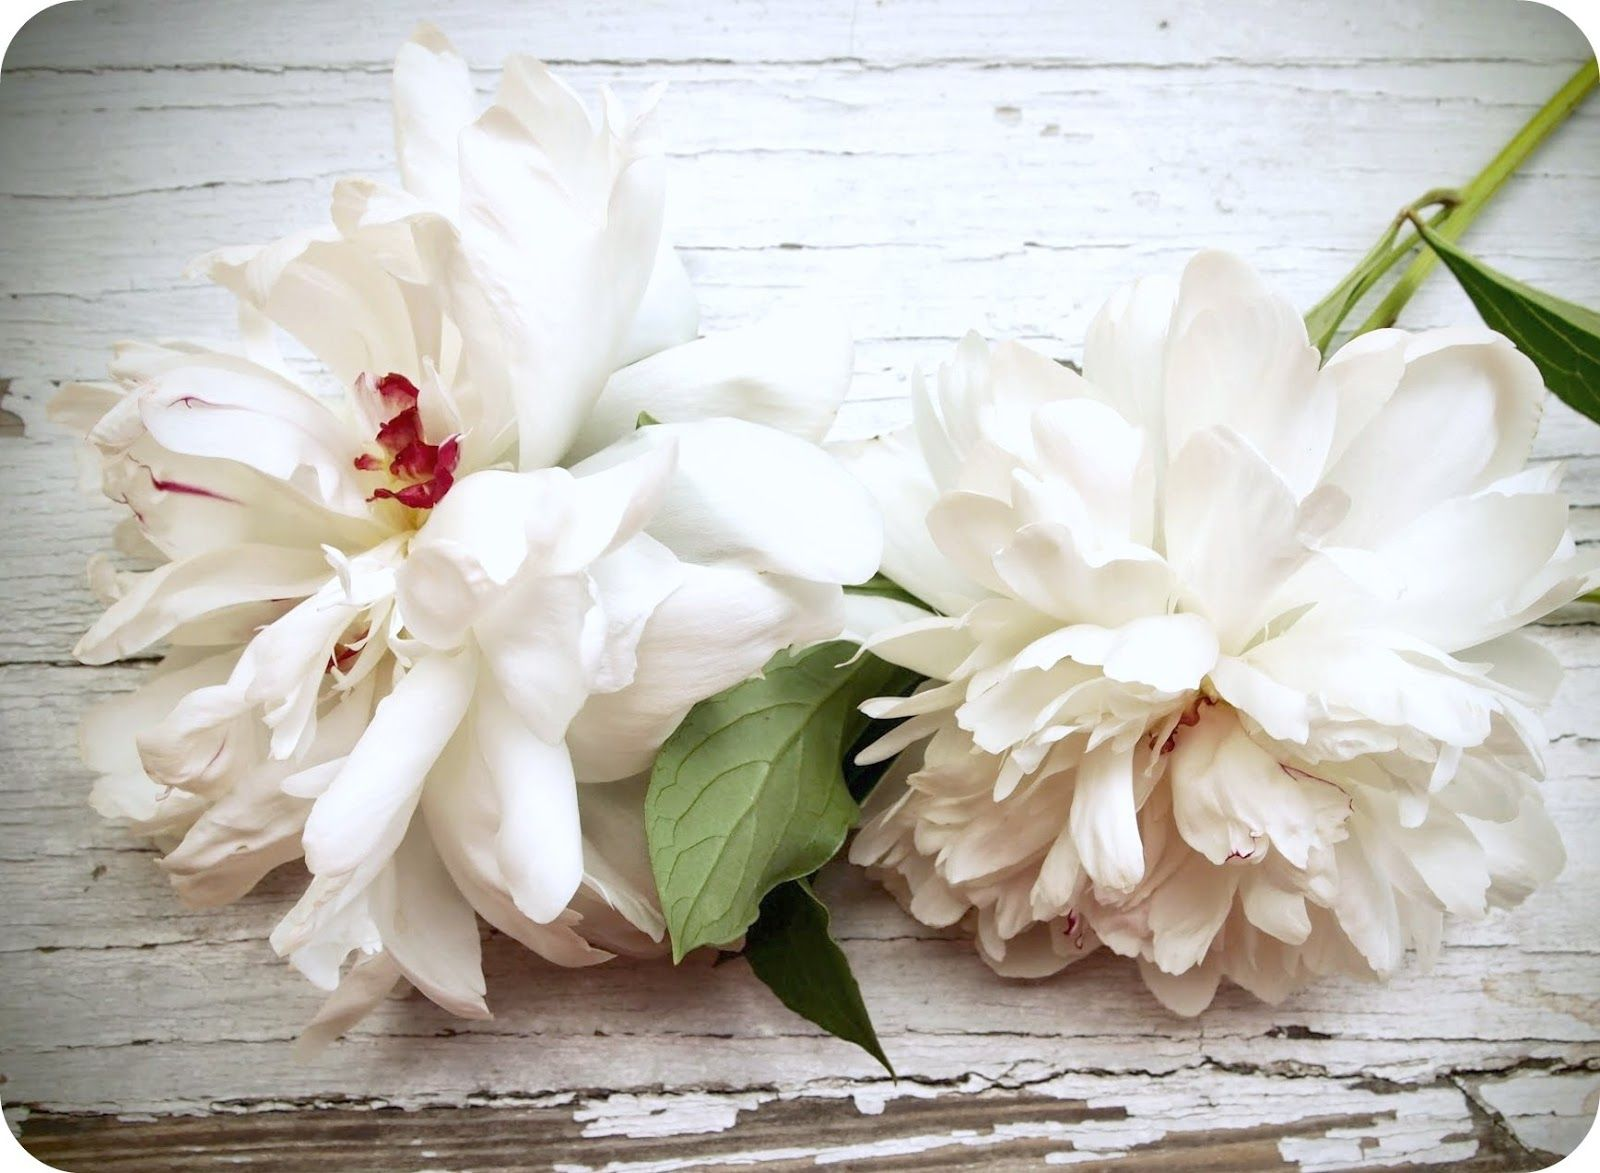 White Peonies With Images White Peonies Peonies All Flowers